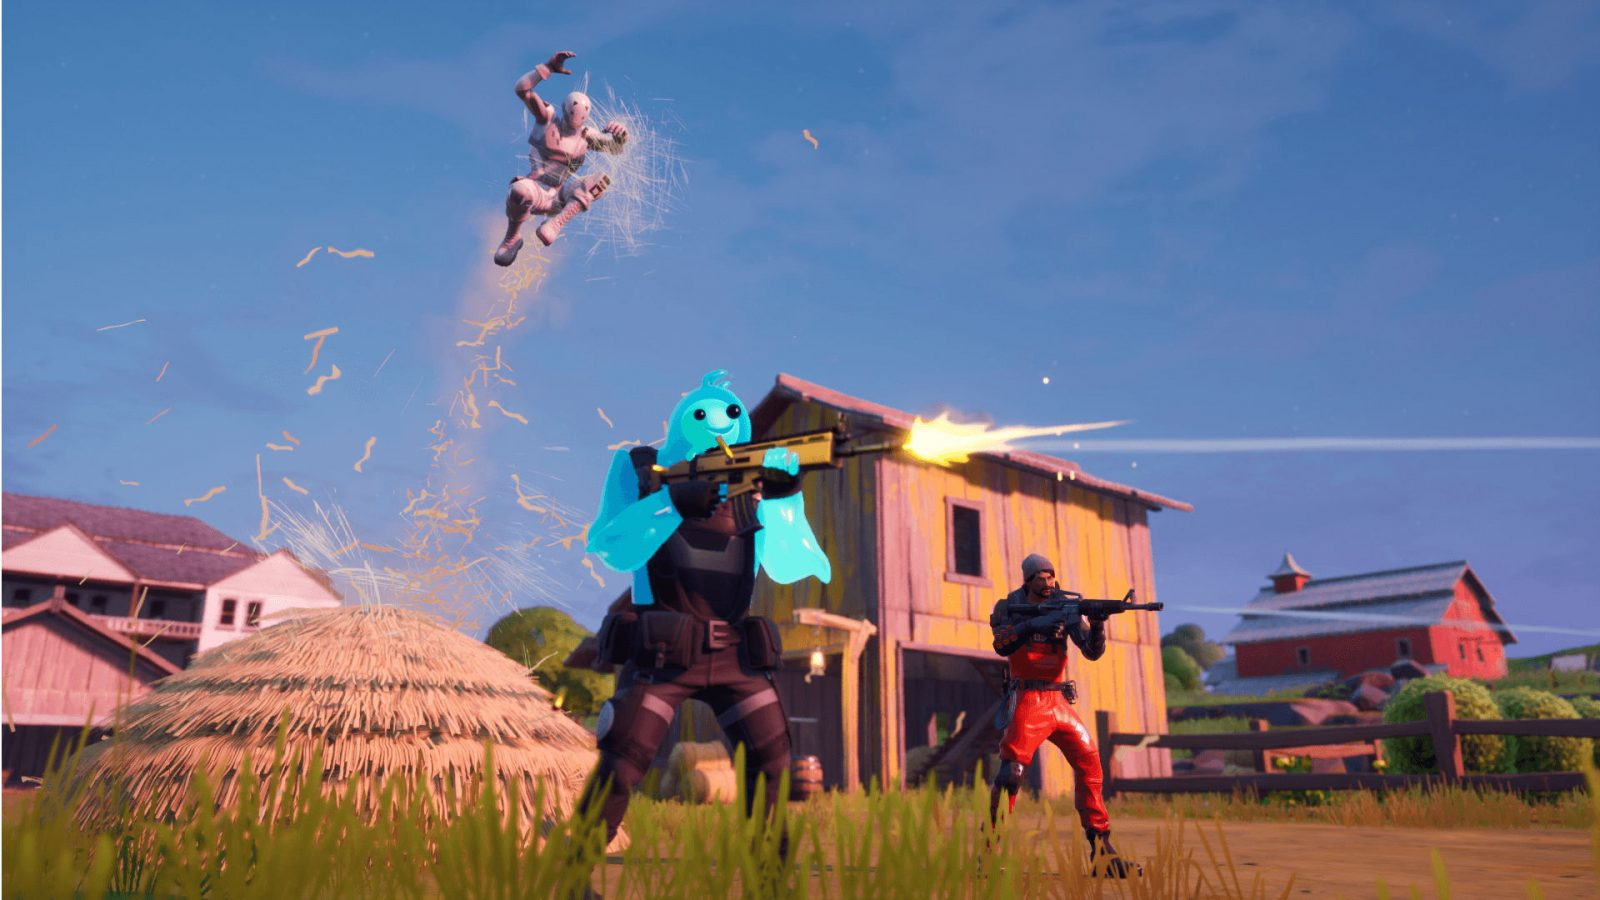 fortnite-letter-i-location:-where-is-the-letter-i-in-the-loading-screen